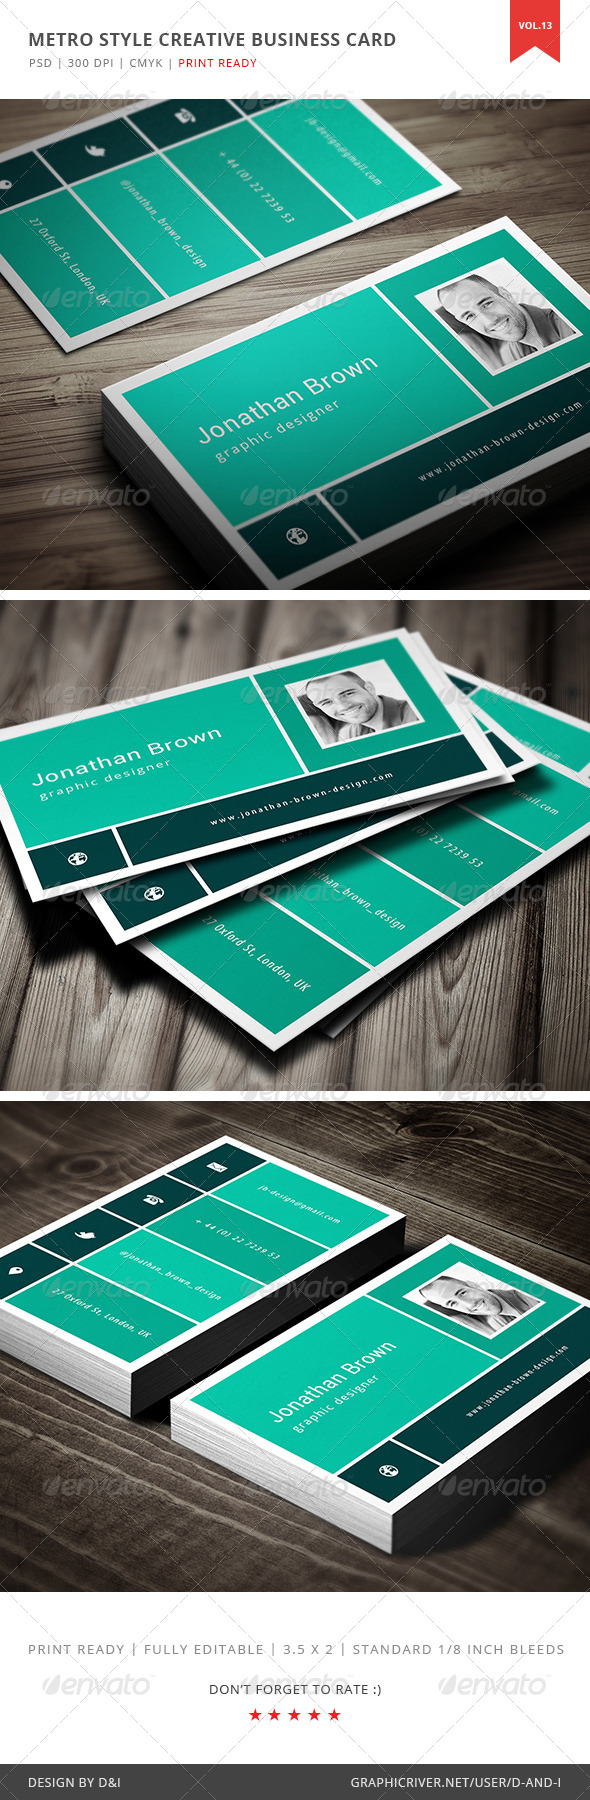 Metro Style Creative Business Card